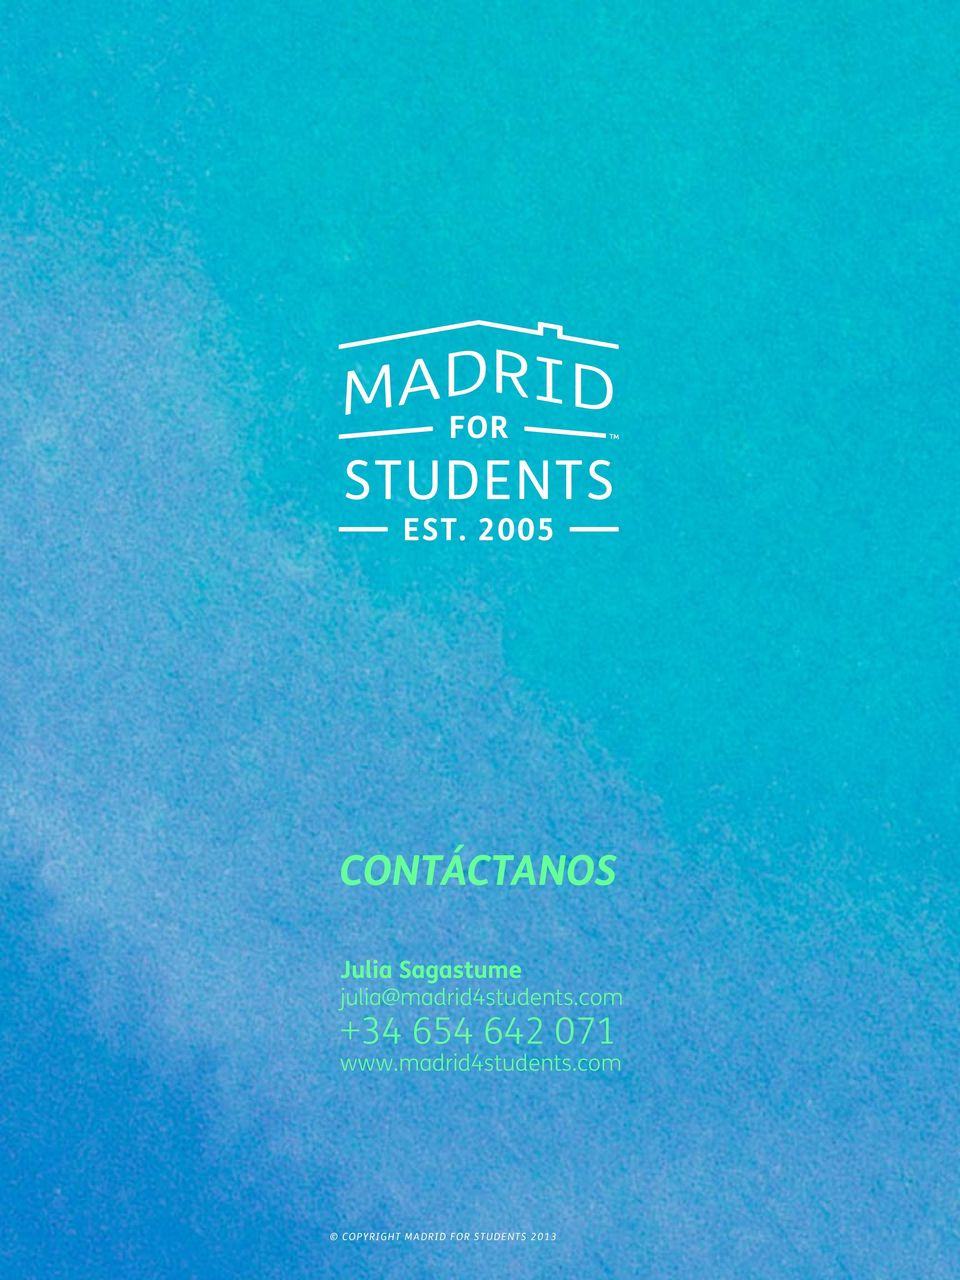 com +34 654 642 071 www.madrid4students.